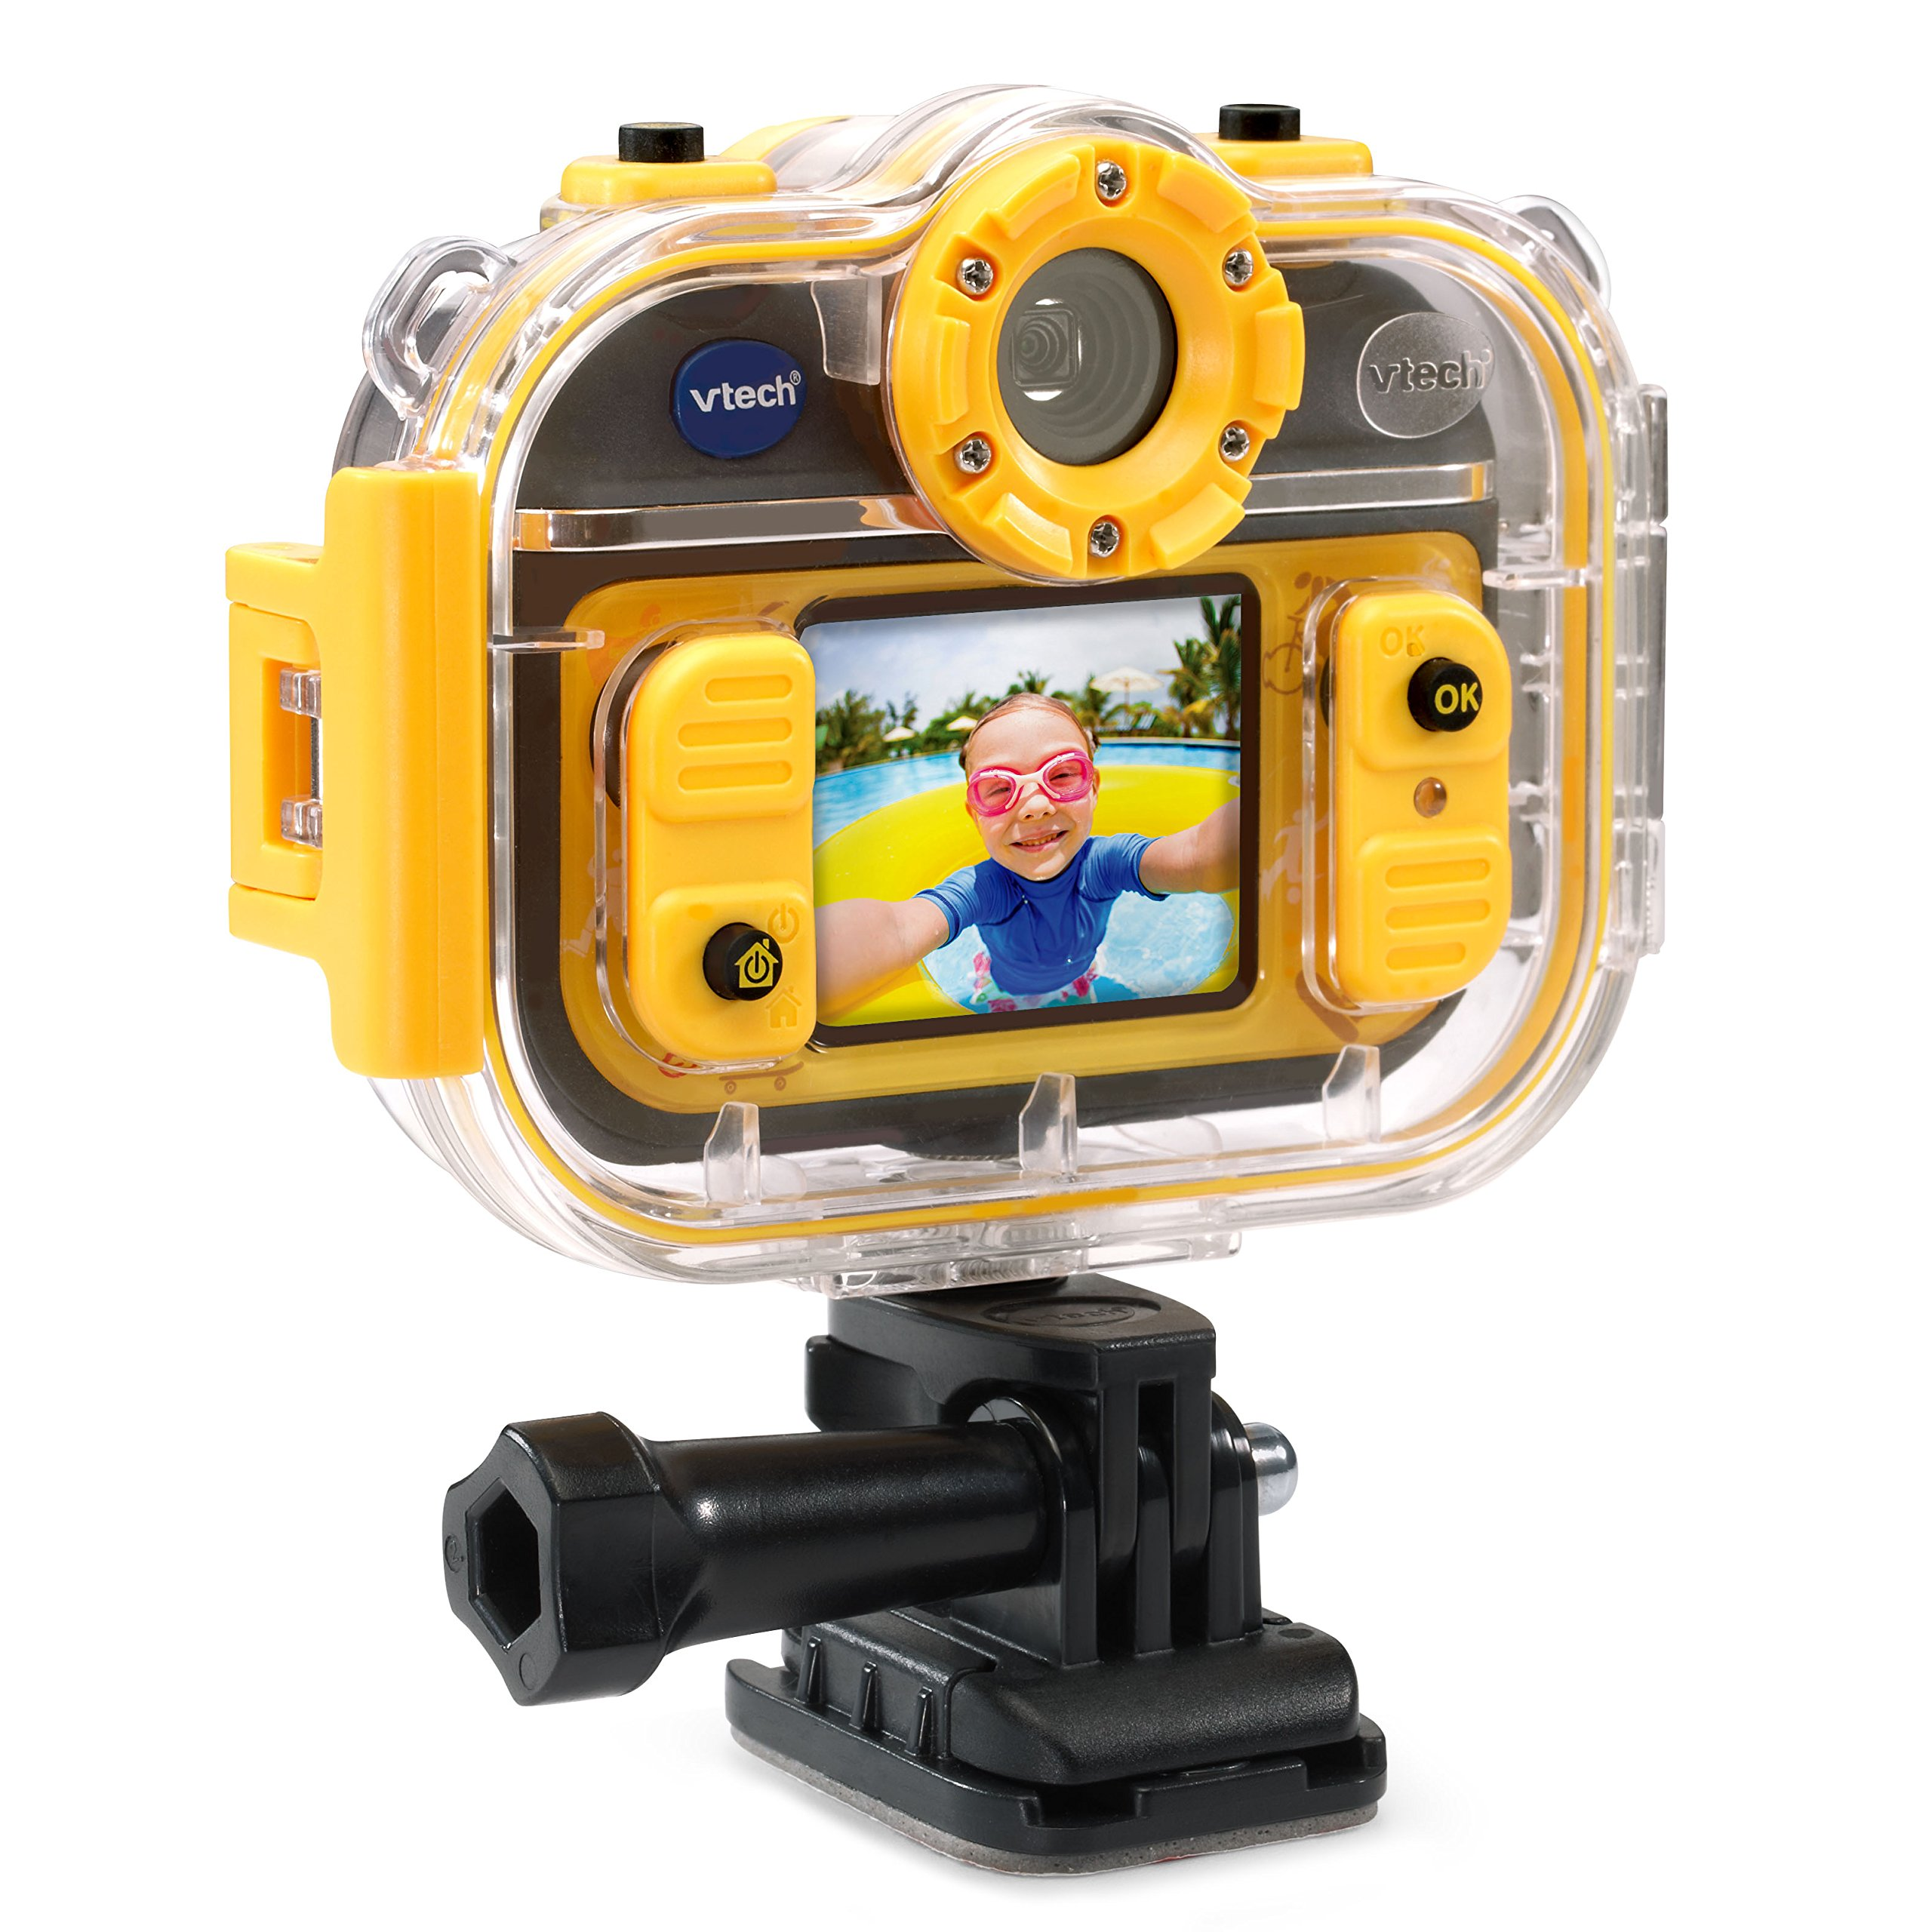 VTech Kidizoom Action Cam 180 (Frustration Free Packaging) by VTech